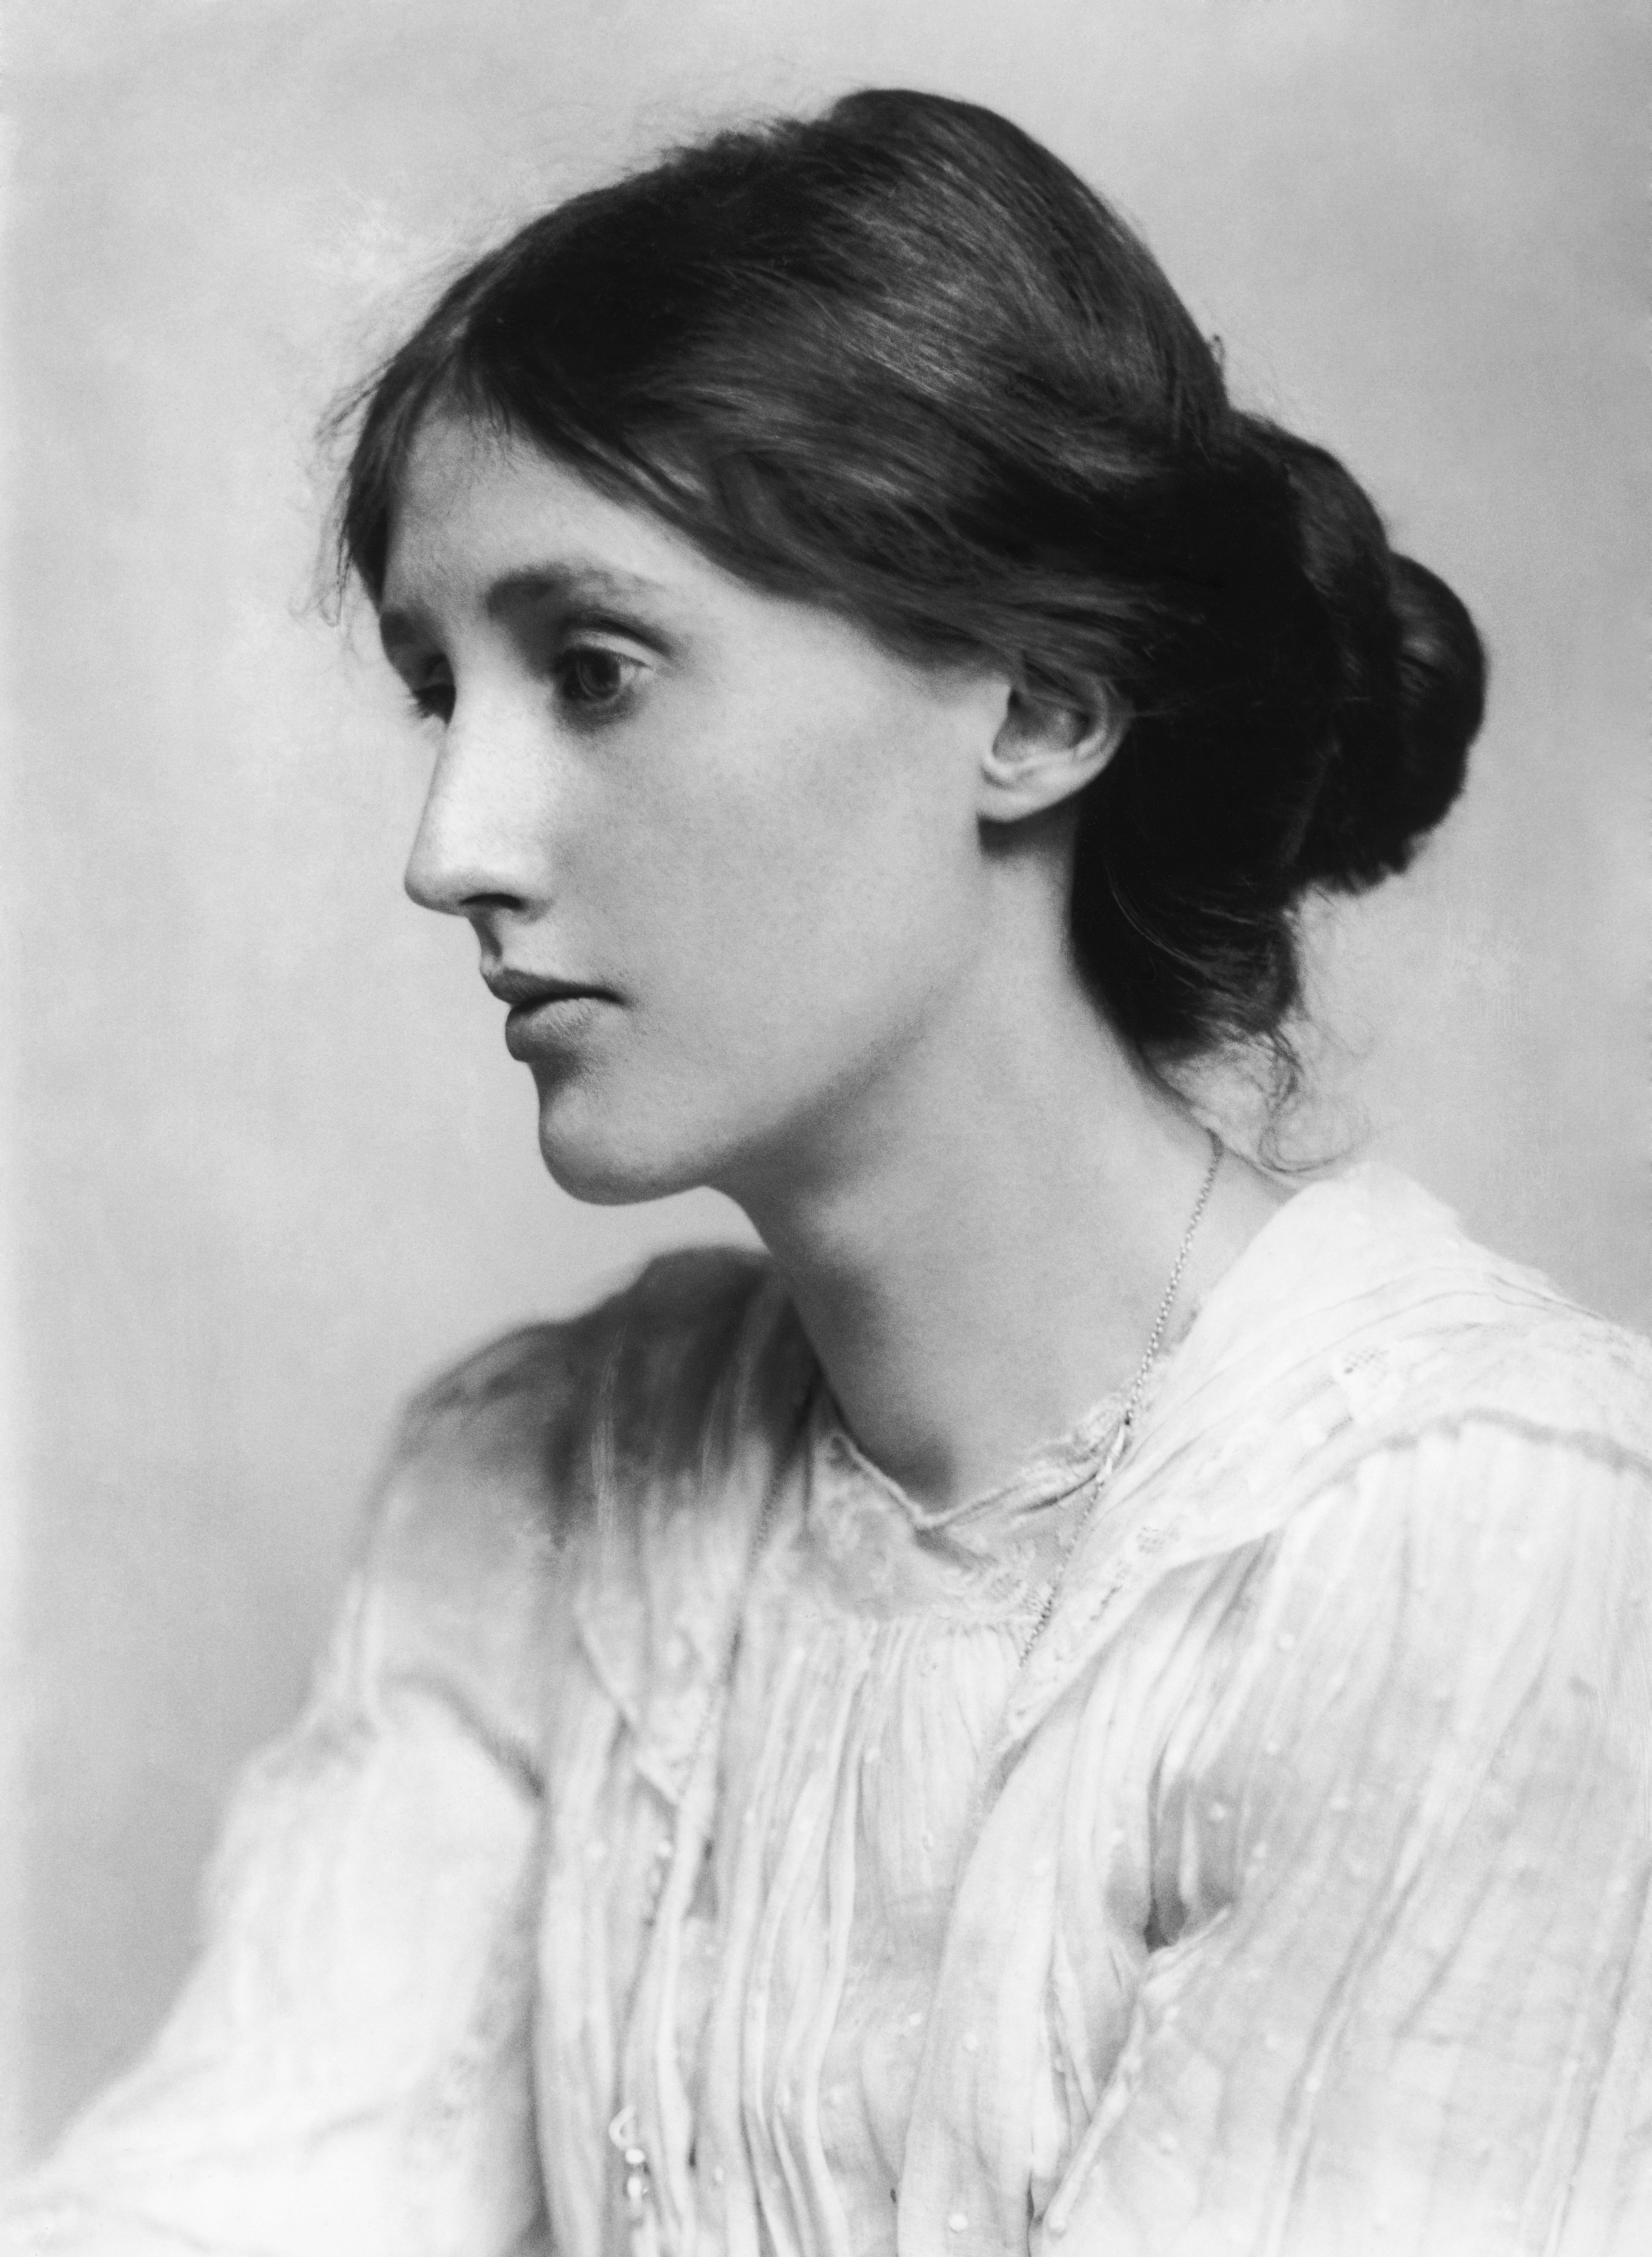 Photograph of Virginia Woolf by George Charles Beresford